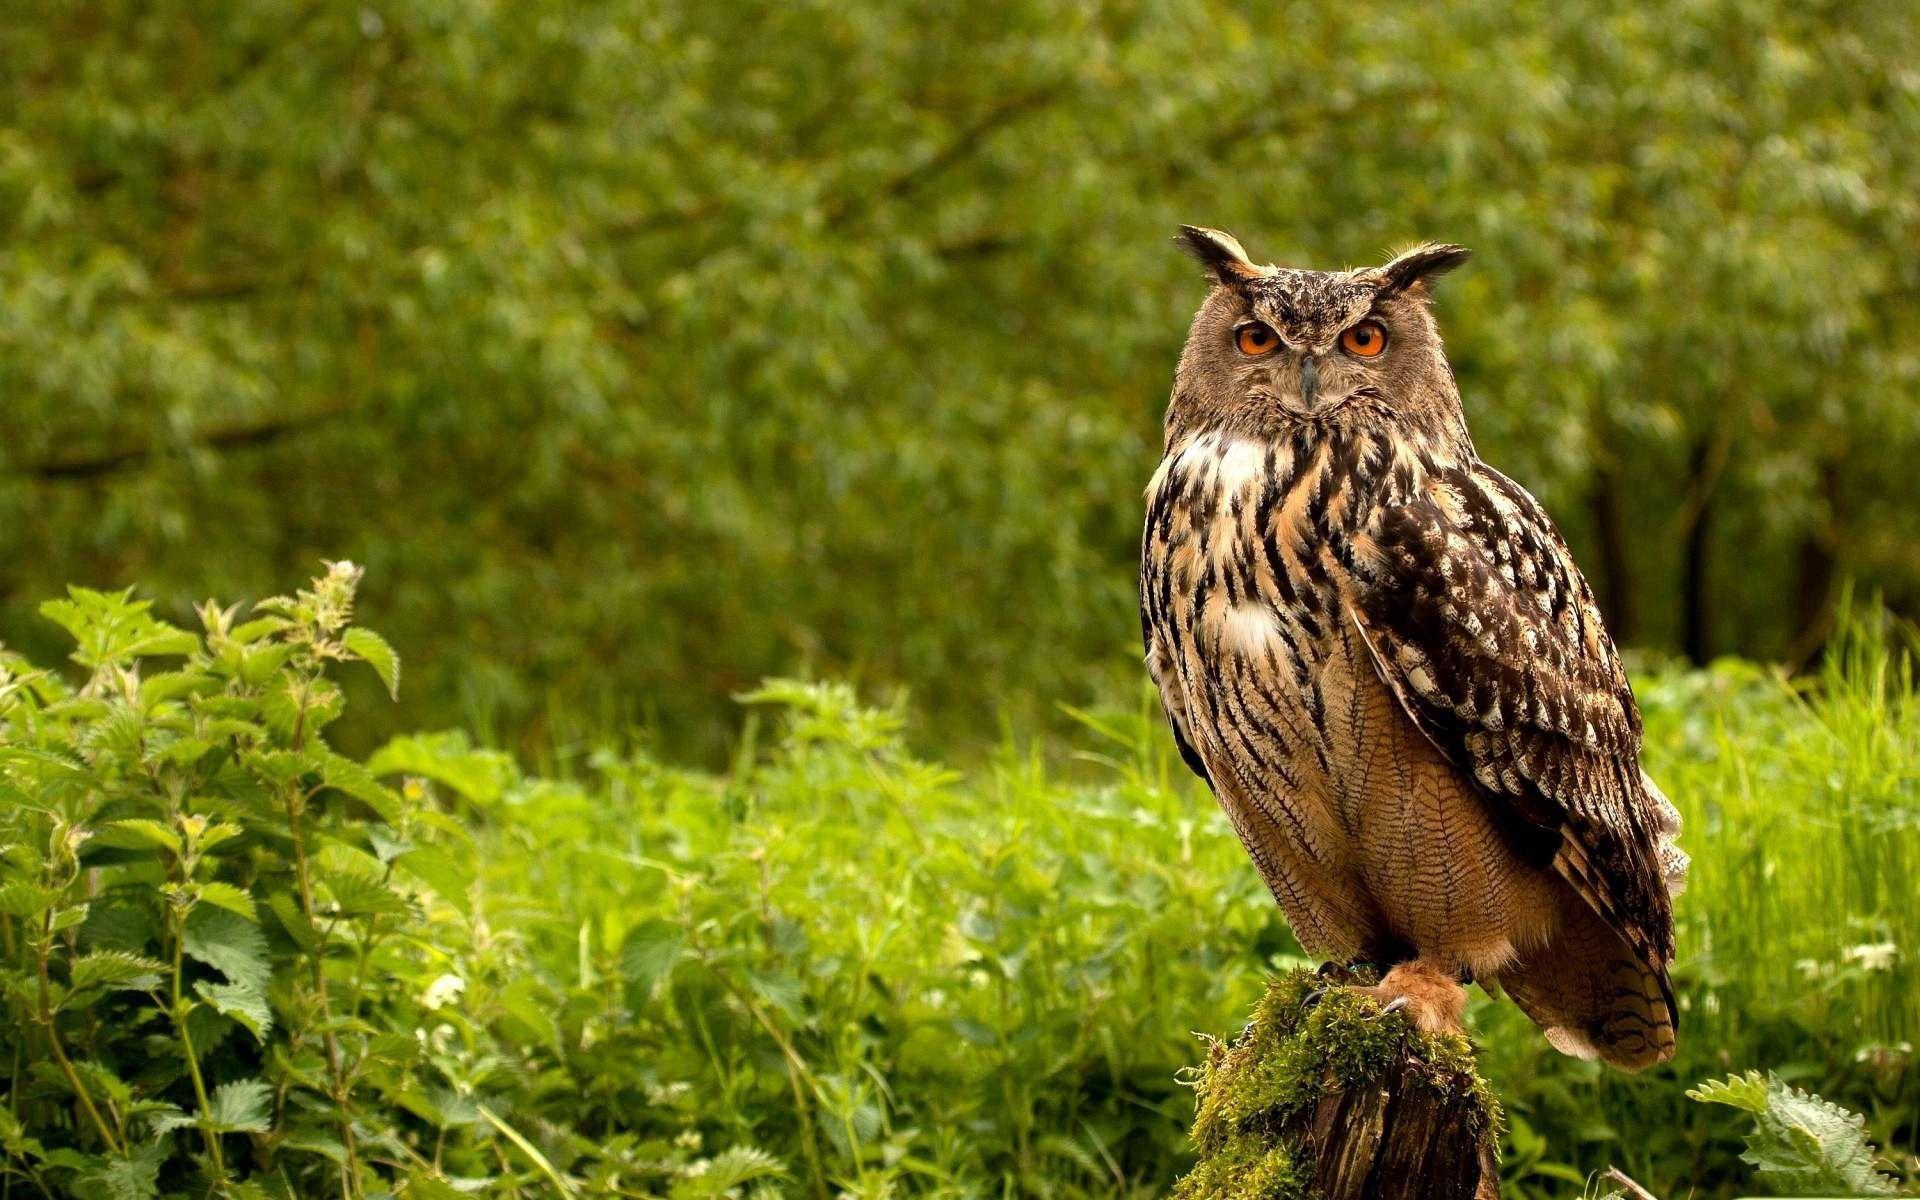 149206 Screensavers and Wallpapers Bird for phone. Download Animals, Grass, Owl, Bird, Greens, Predator pictures for free